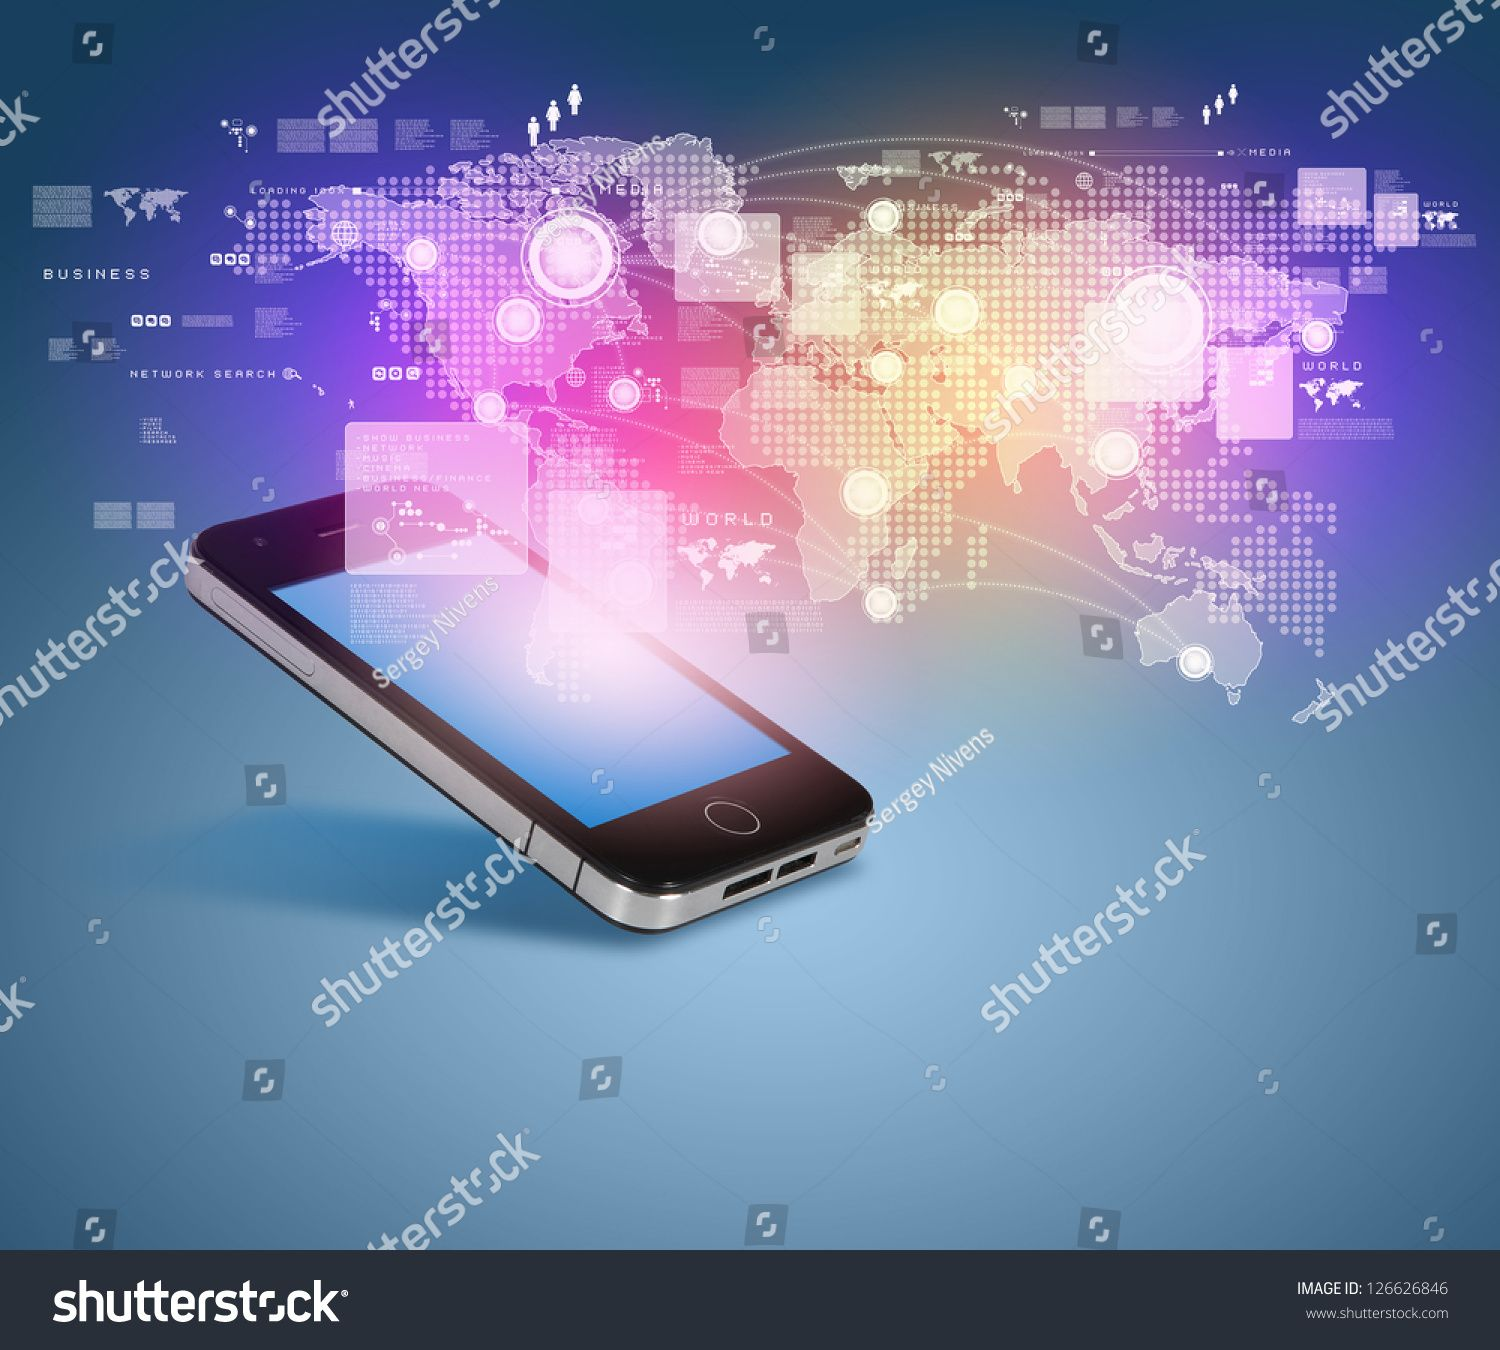 Modern Communication Technology Illustration With Mobile Phone And High Tech Background Ad Sponsored Technology Il In 2020 Tech Background High Tech Mobile Phone